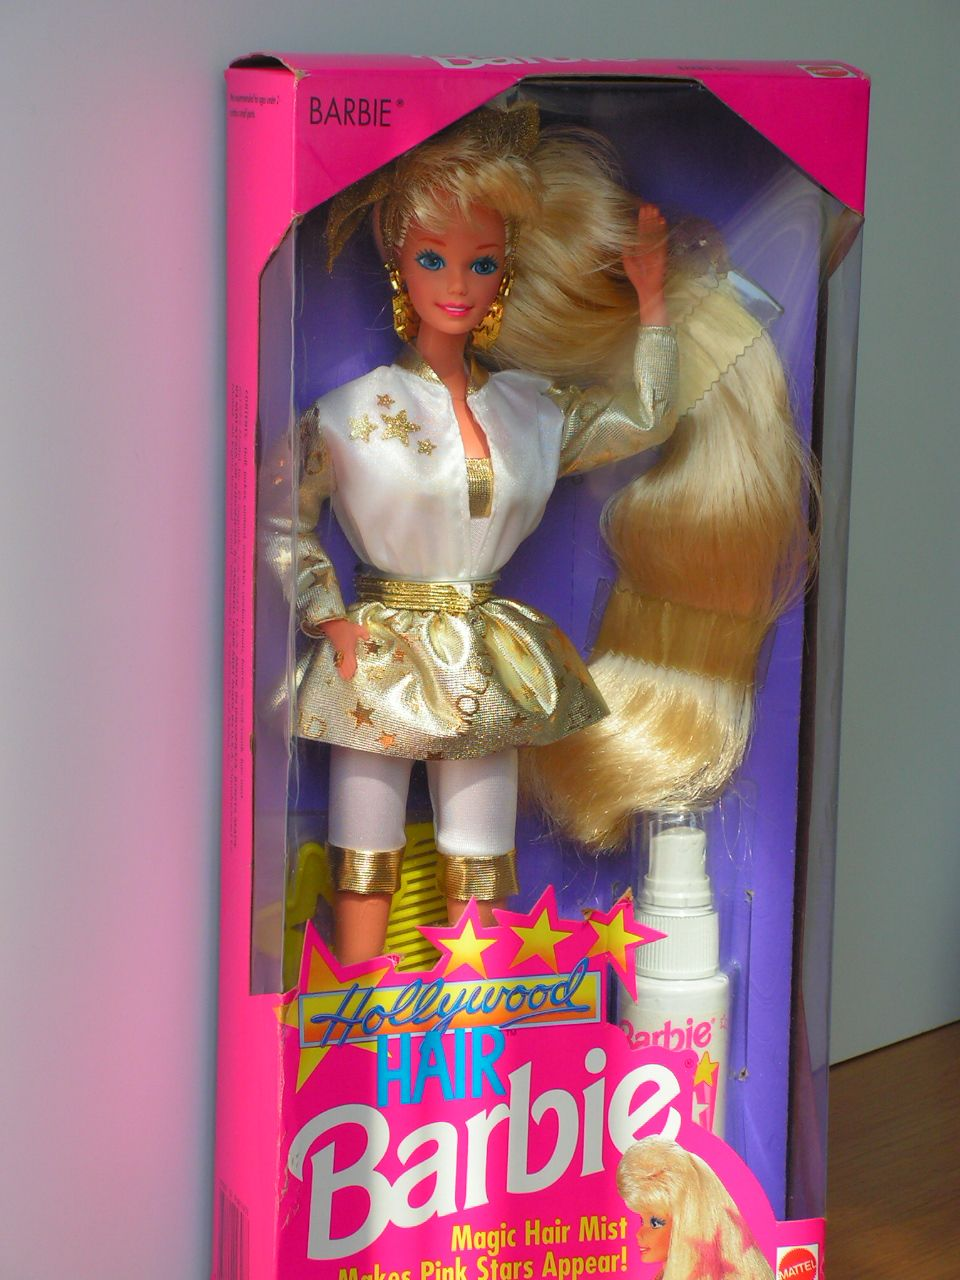 Hollywood hair barbie - we called her big hair barbie. My child had a hand me down one in the late 90's.